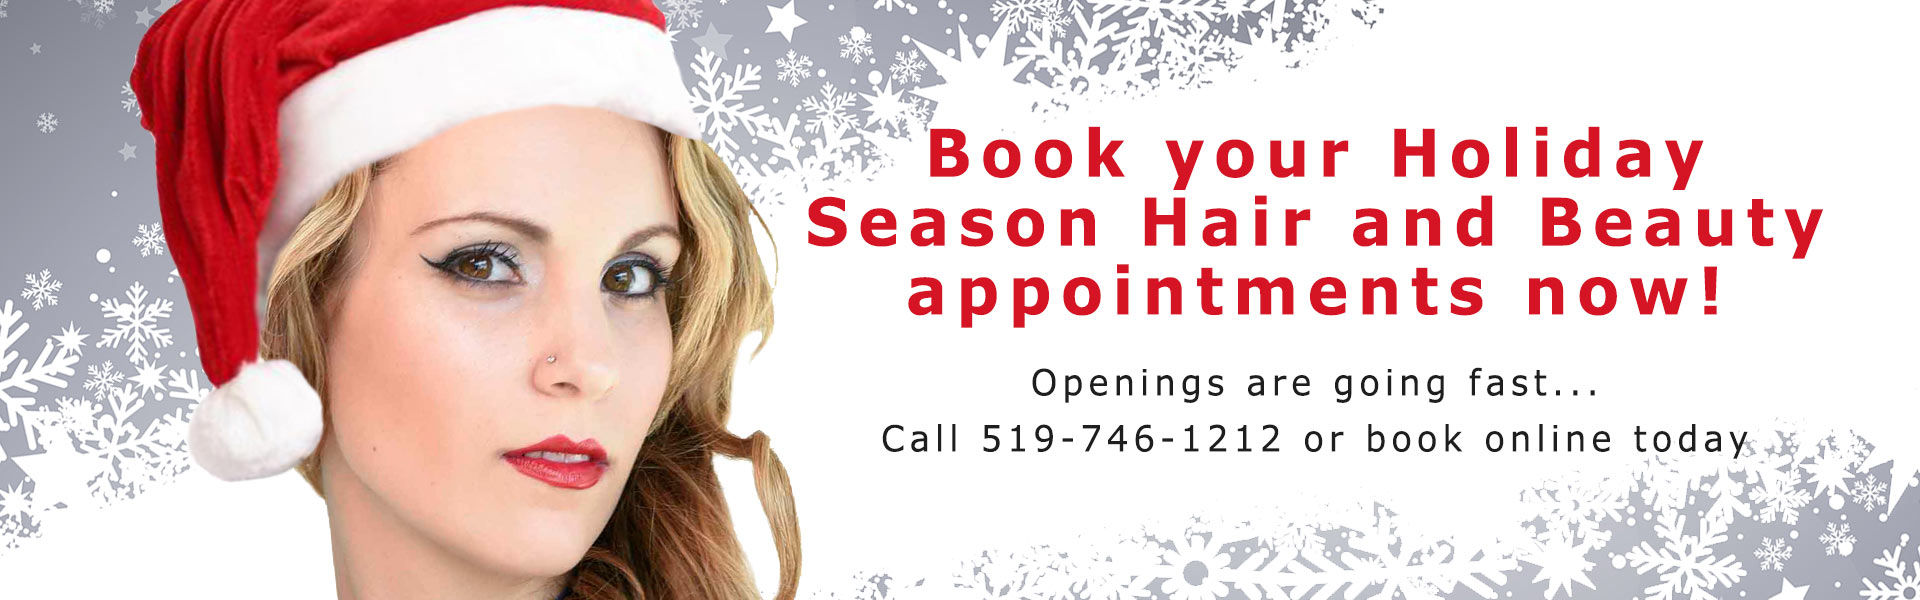 Christmas hair styles appointments Waterloo Ontario Element Hair